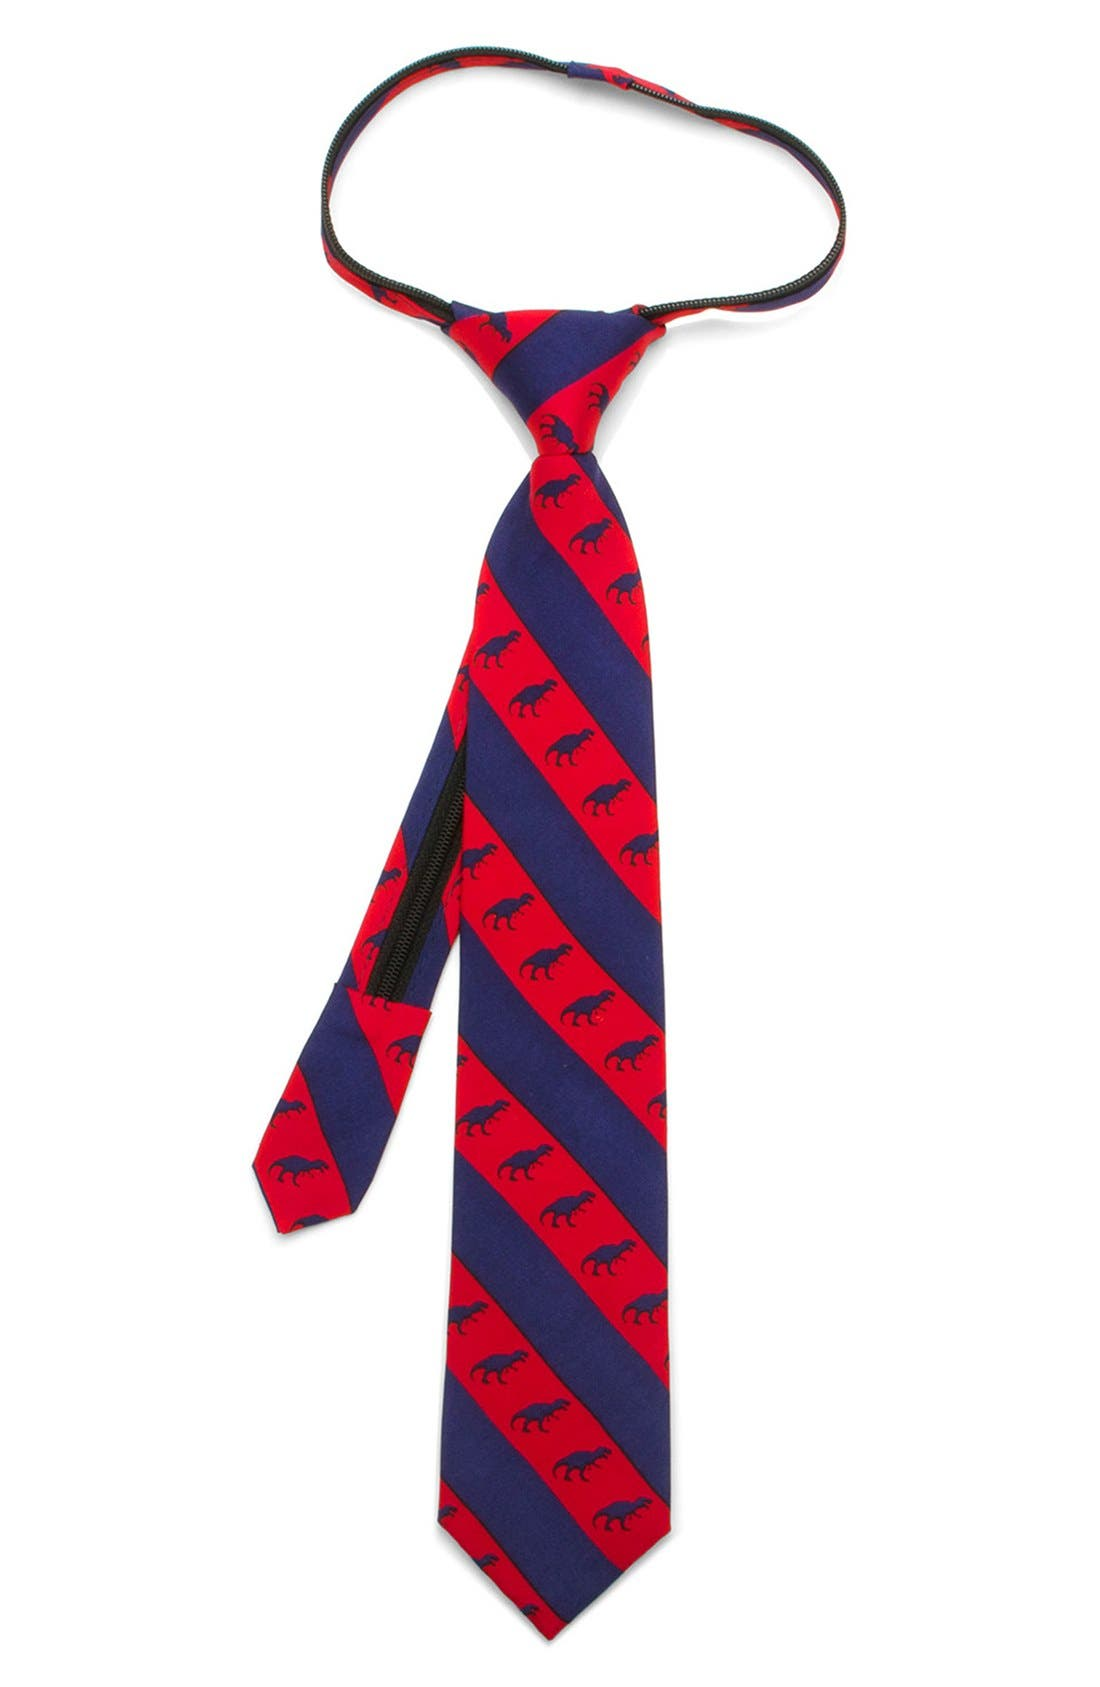 OX AND BULL TRADING CO. T-Rex SilkTie